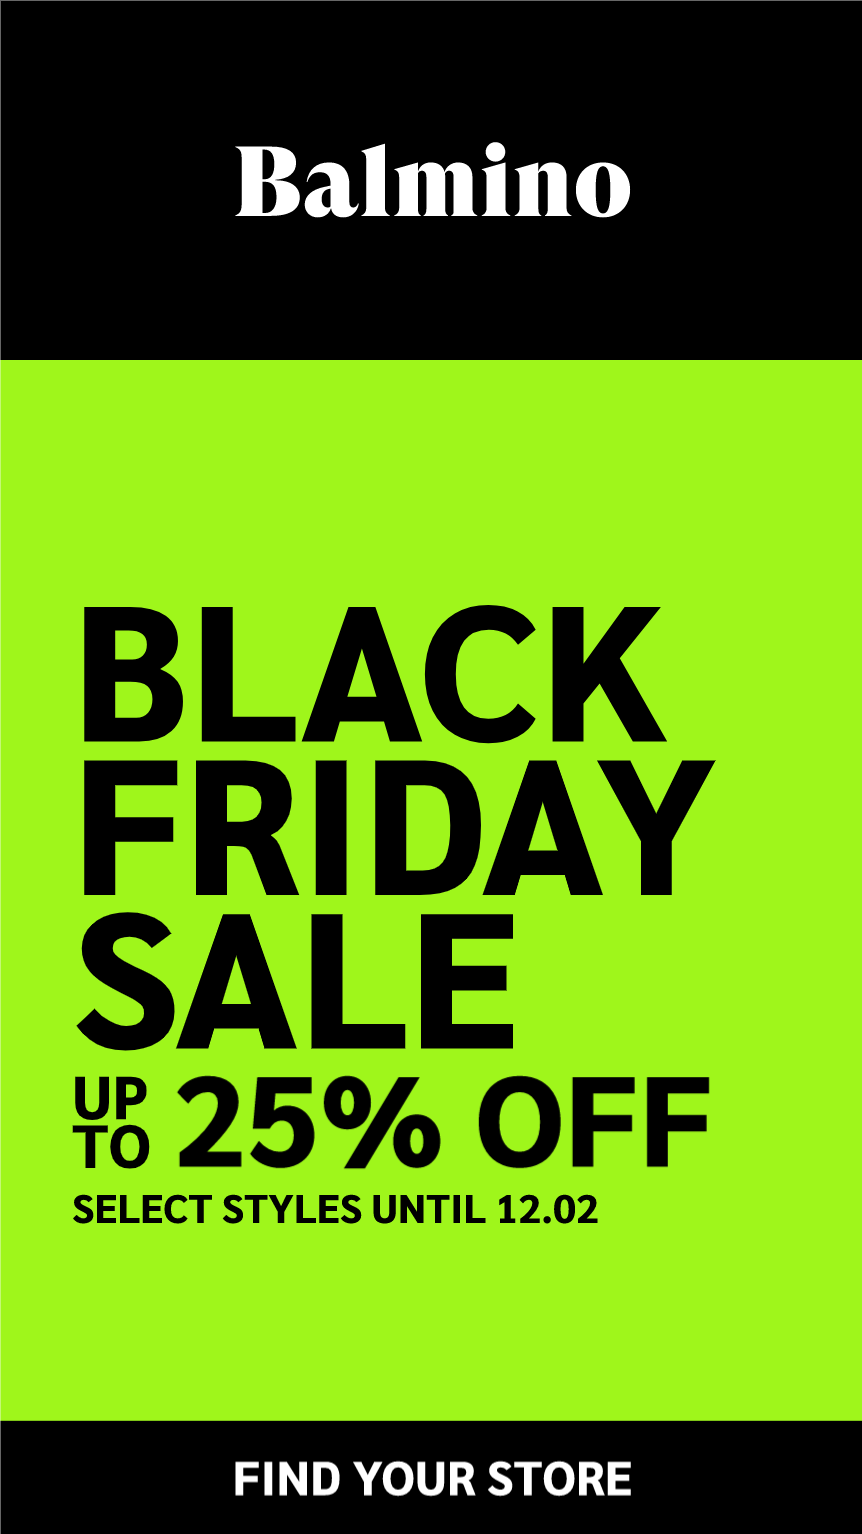 Template Black Friday - Neon